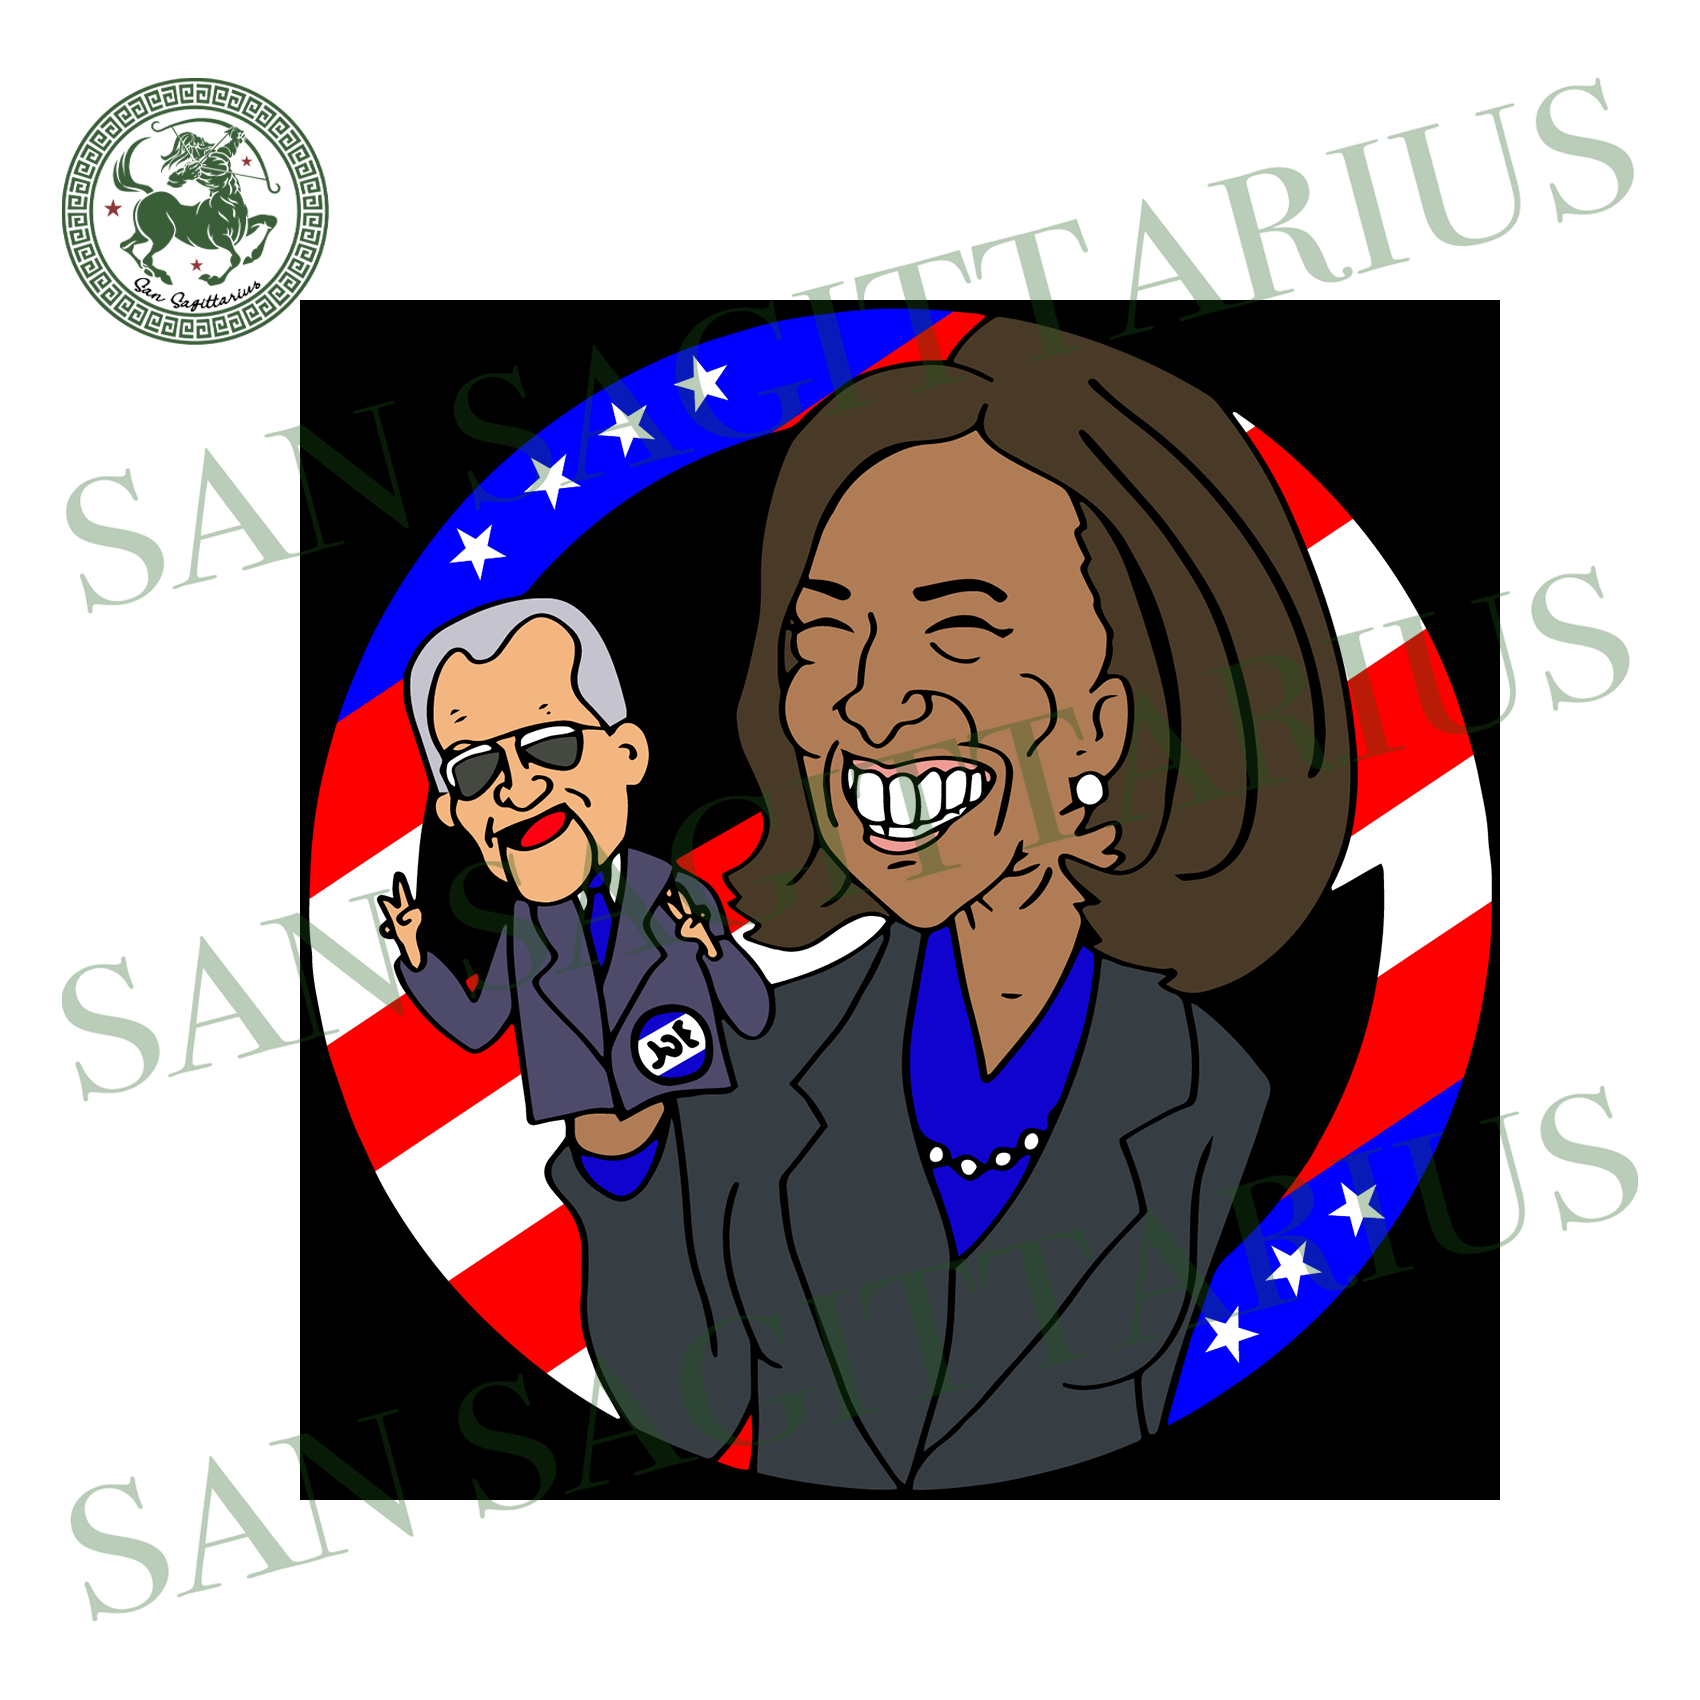 Joe Biden Kamala Harris 2020 svg,svg,harris 2020 svg,political shirt svg,anti trump 2020 svg,biden for president svg,svg cricut, silhouette svg files, cricut svg, silhouette svg, svg designs,